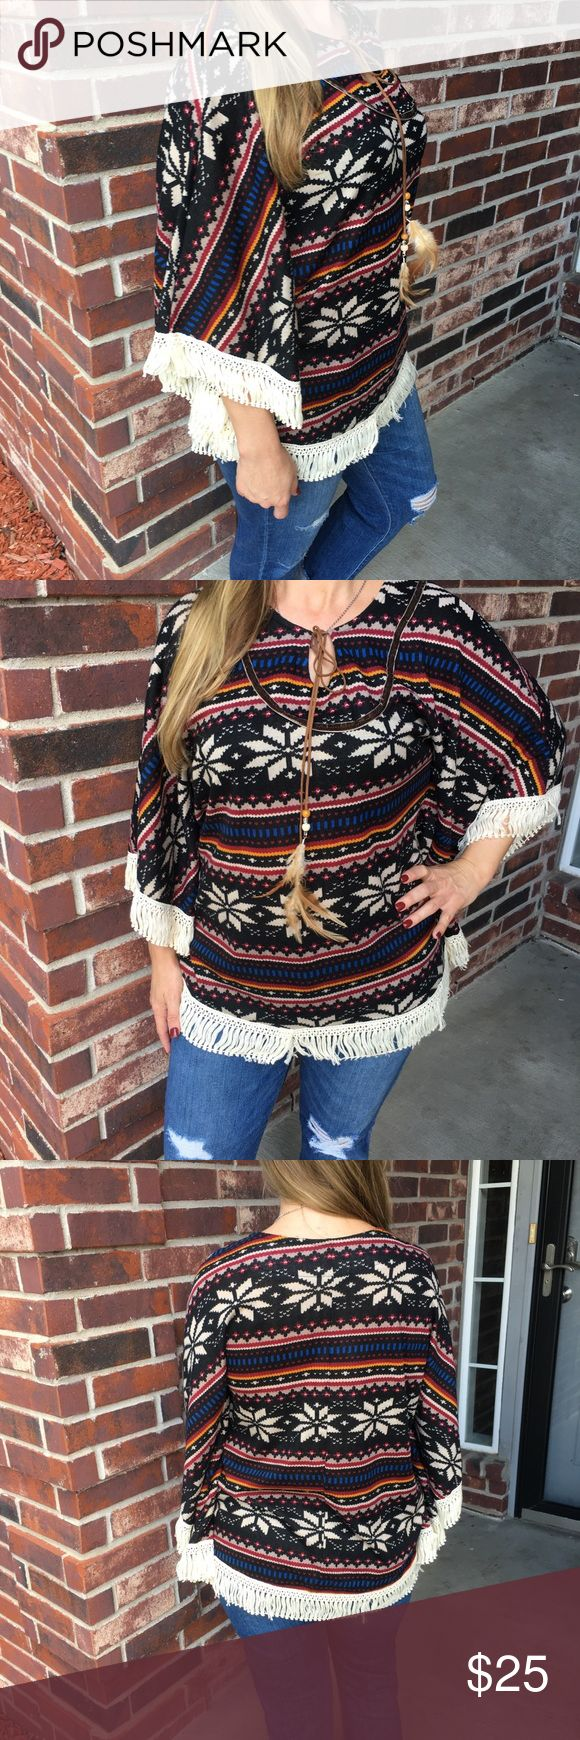 TW7S Southwest poncho fringe shirt Southwest multicolor poncho style fringe shirt. Leather look neckline tie with bead and feather ends. Some fringe is out of place. TW7S Tops